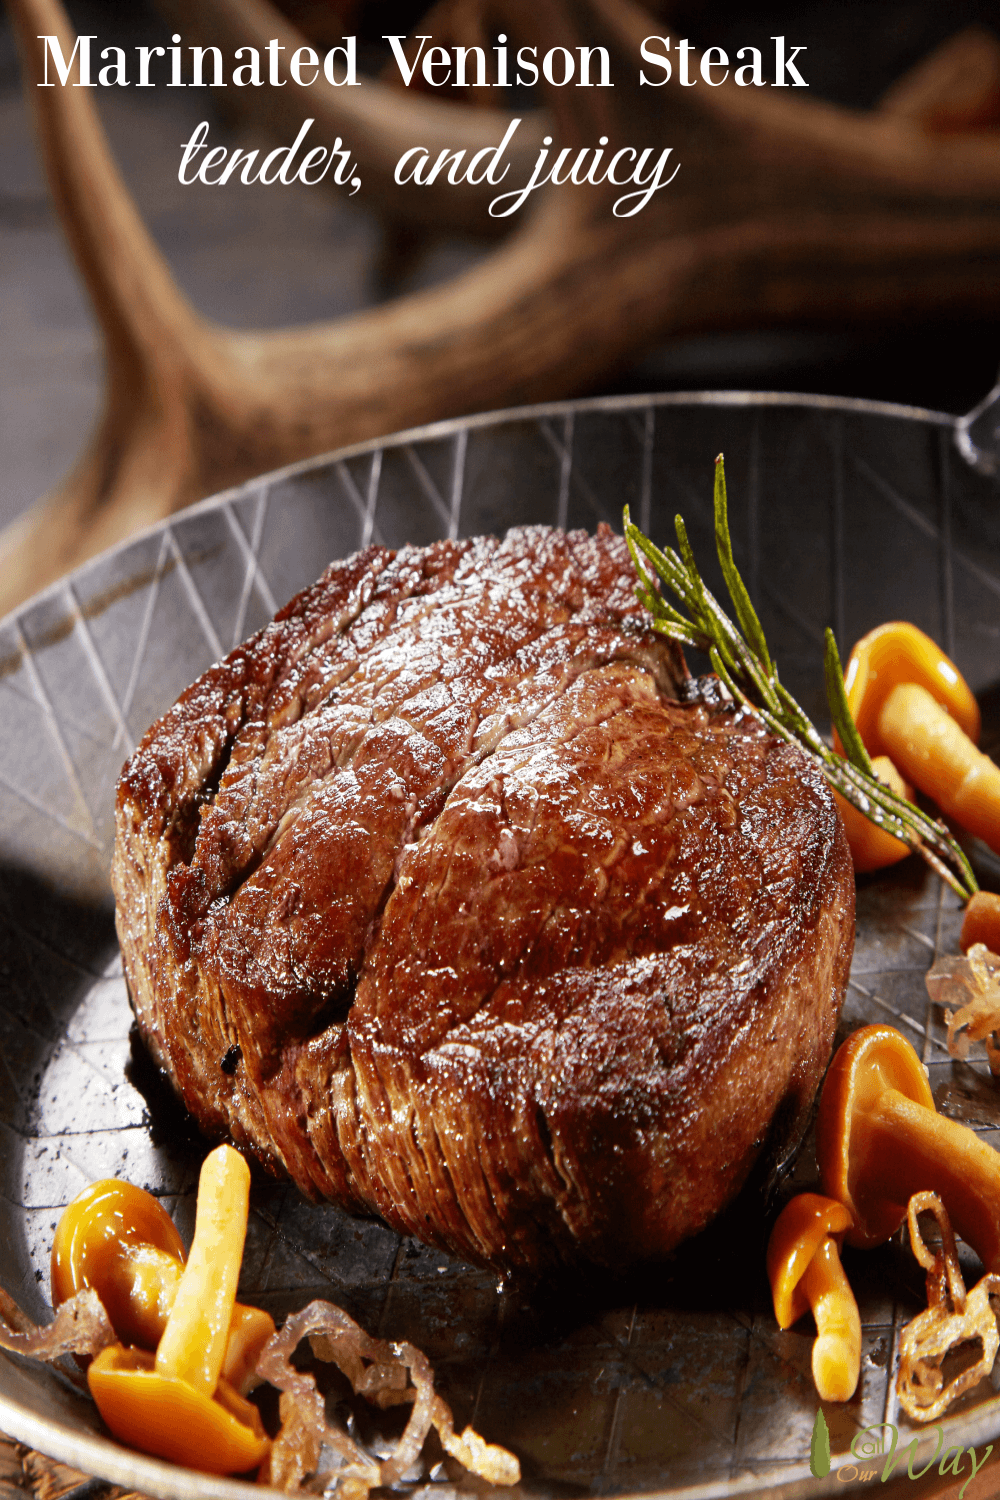 Grilled Marinated Venison Steak is first marinated and then grilled to perfection. The deer meat is tender and juicy with no gamey taste. The marinade can also be used for other game meat. #venison, #venisonsteak, #deer, #deersteak, #grilledvenisonsteak, #venisonmarinade, #wildgamegrilling, #wildgamemarinade, #deermeat, #howtojudgemeatwithoutthermometer, #allourway